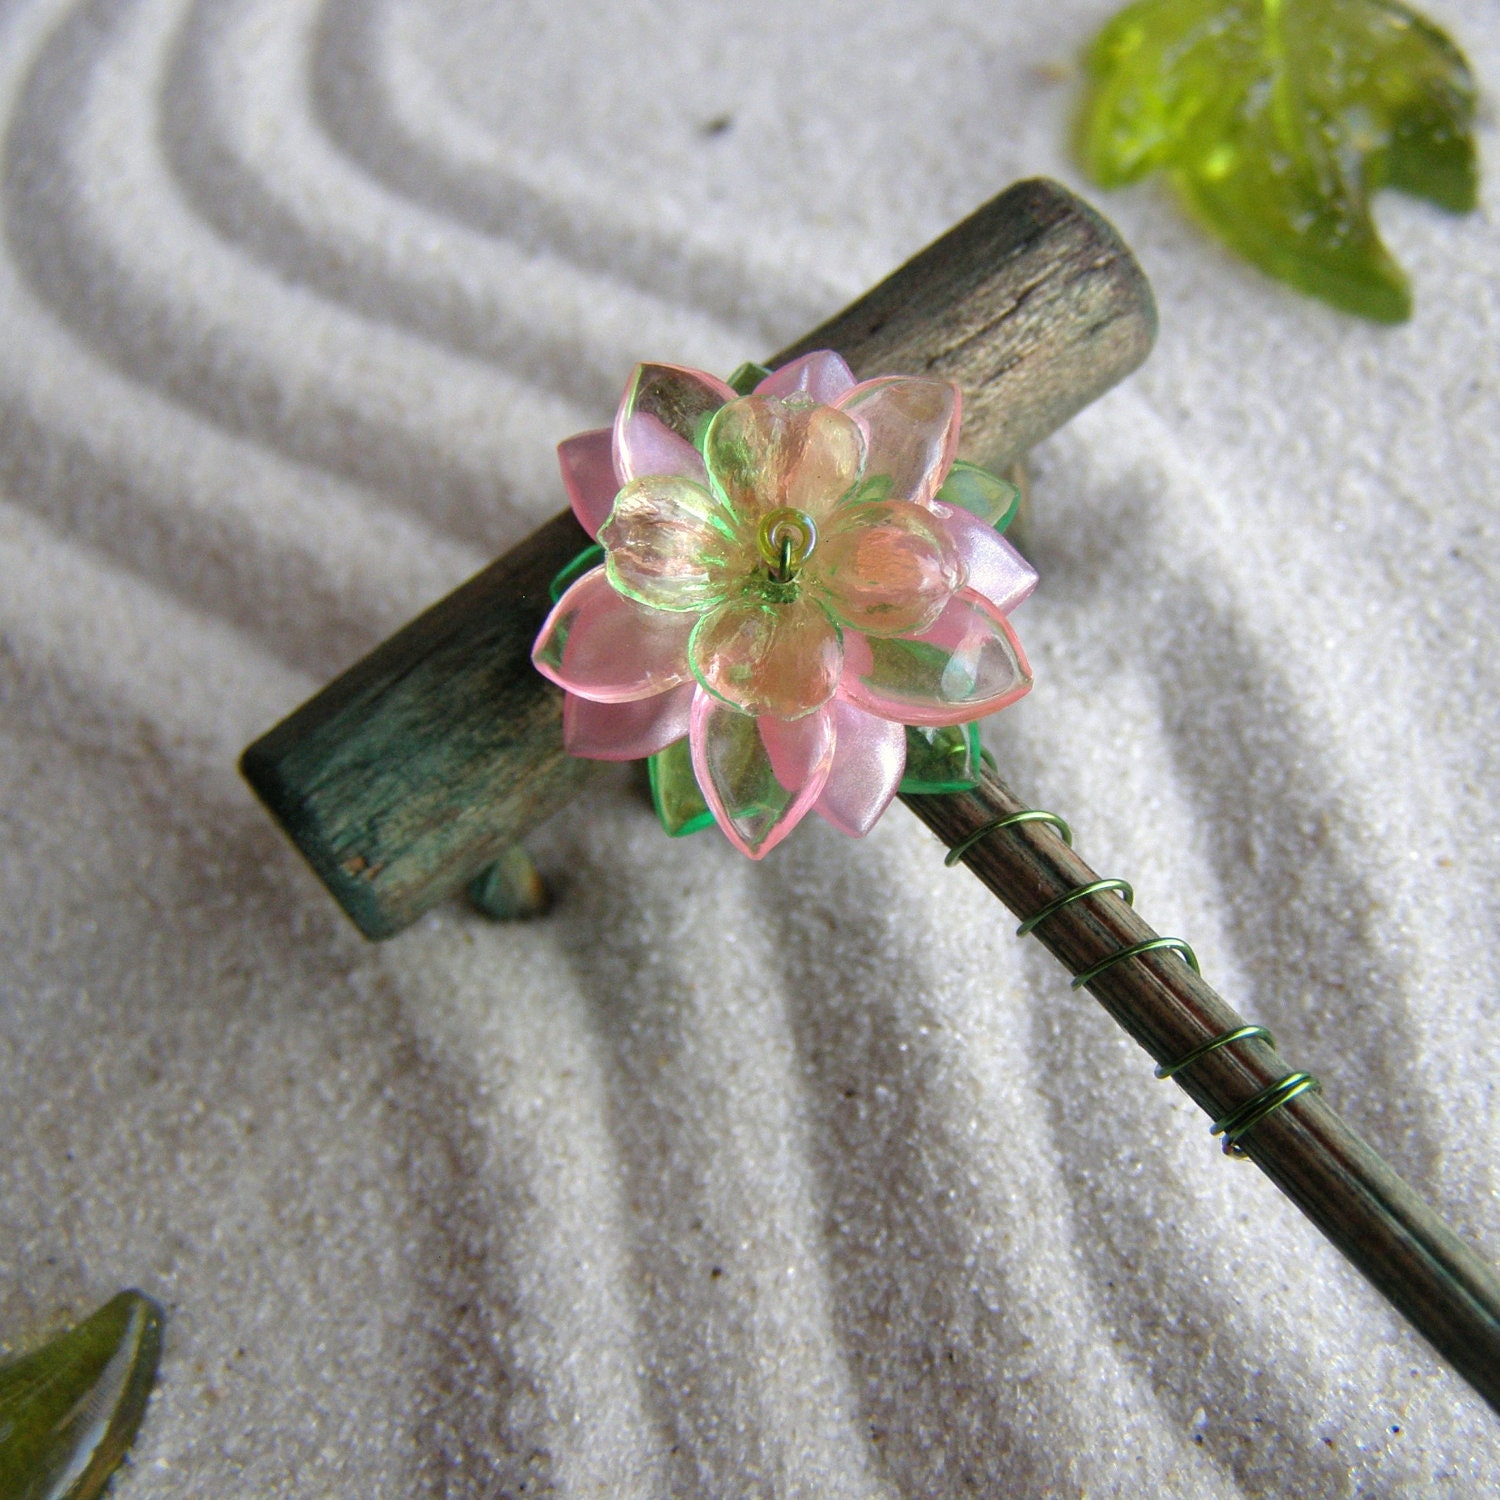 Mini tabletop zen garden rake handmade in oregon by themudmom for Table zen garden